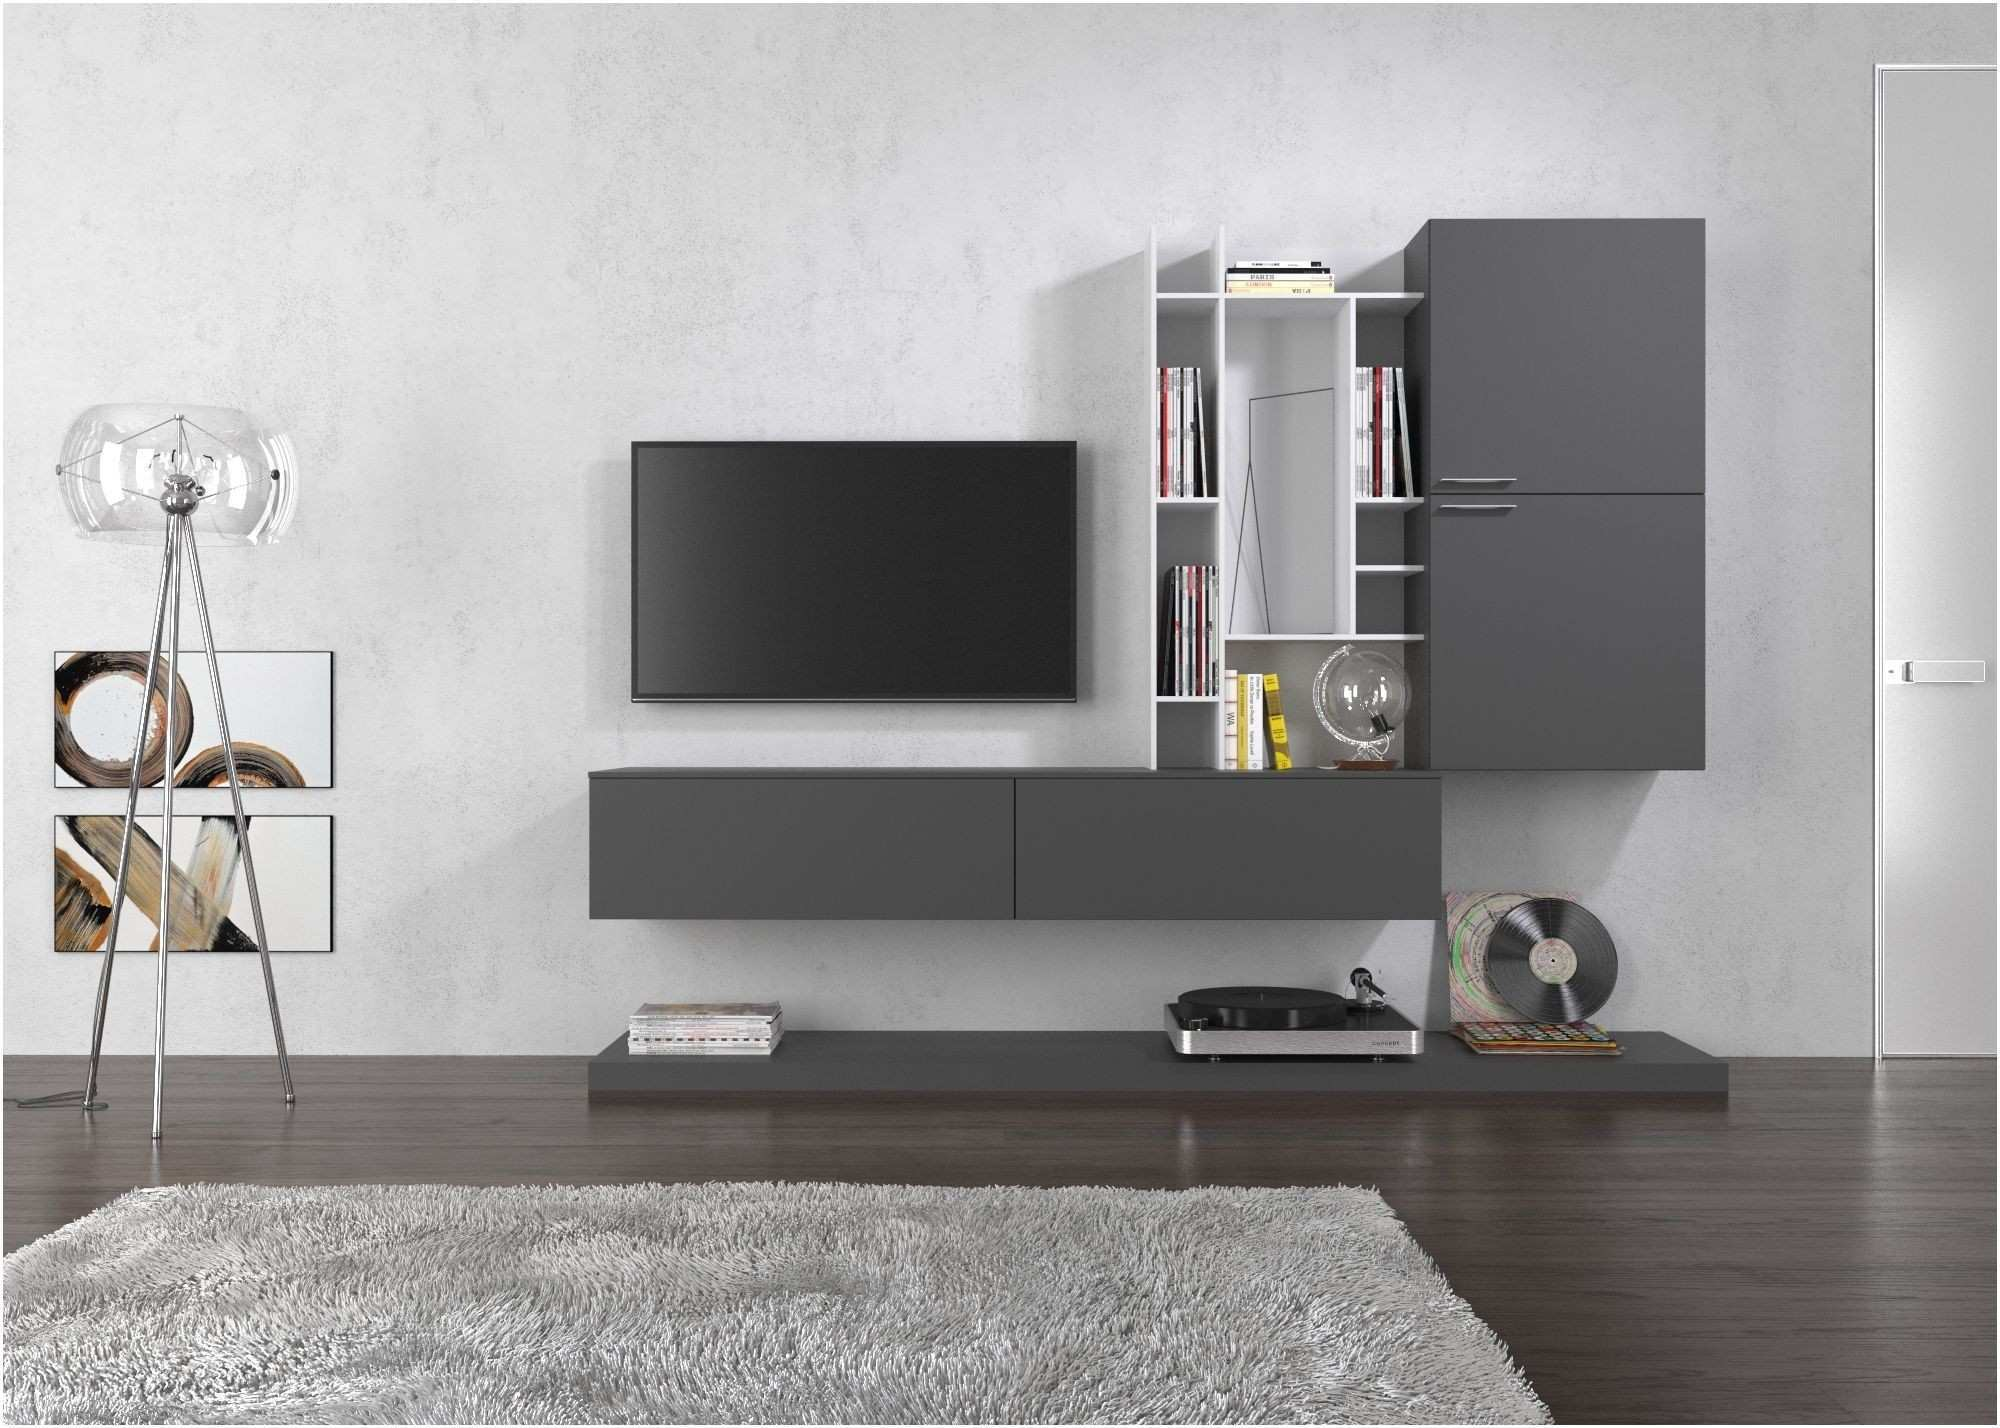 Home Design Black Wall Shelves New Home To Home Decor Best Decor